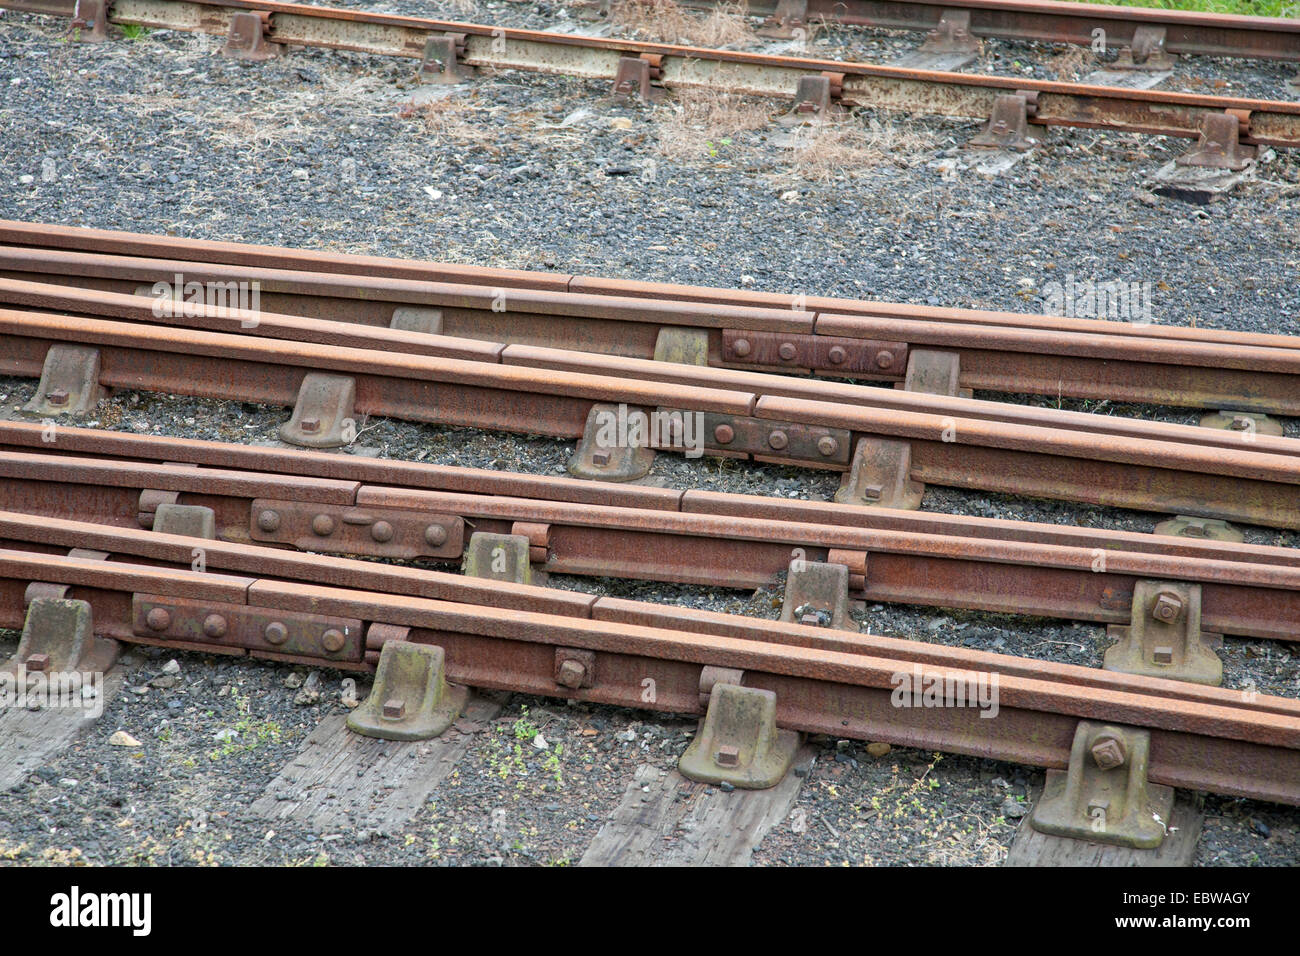 Points on railway lines - Stock Image